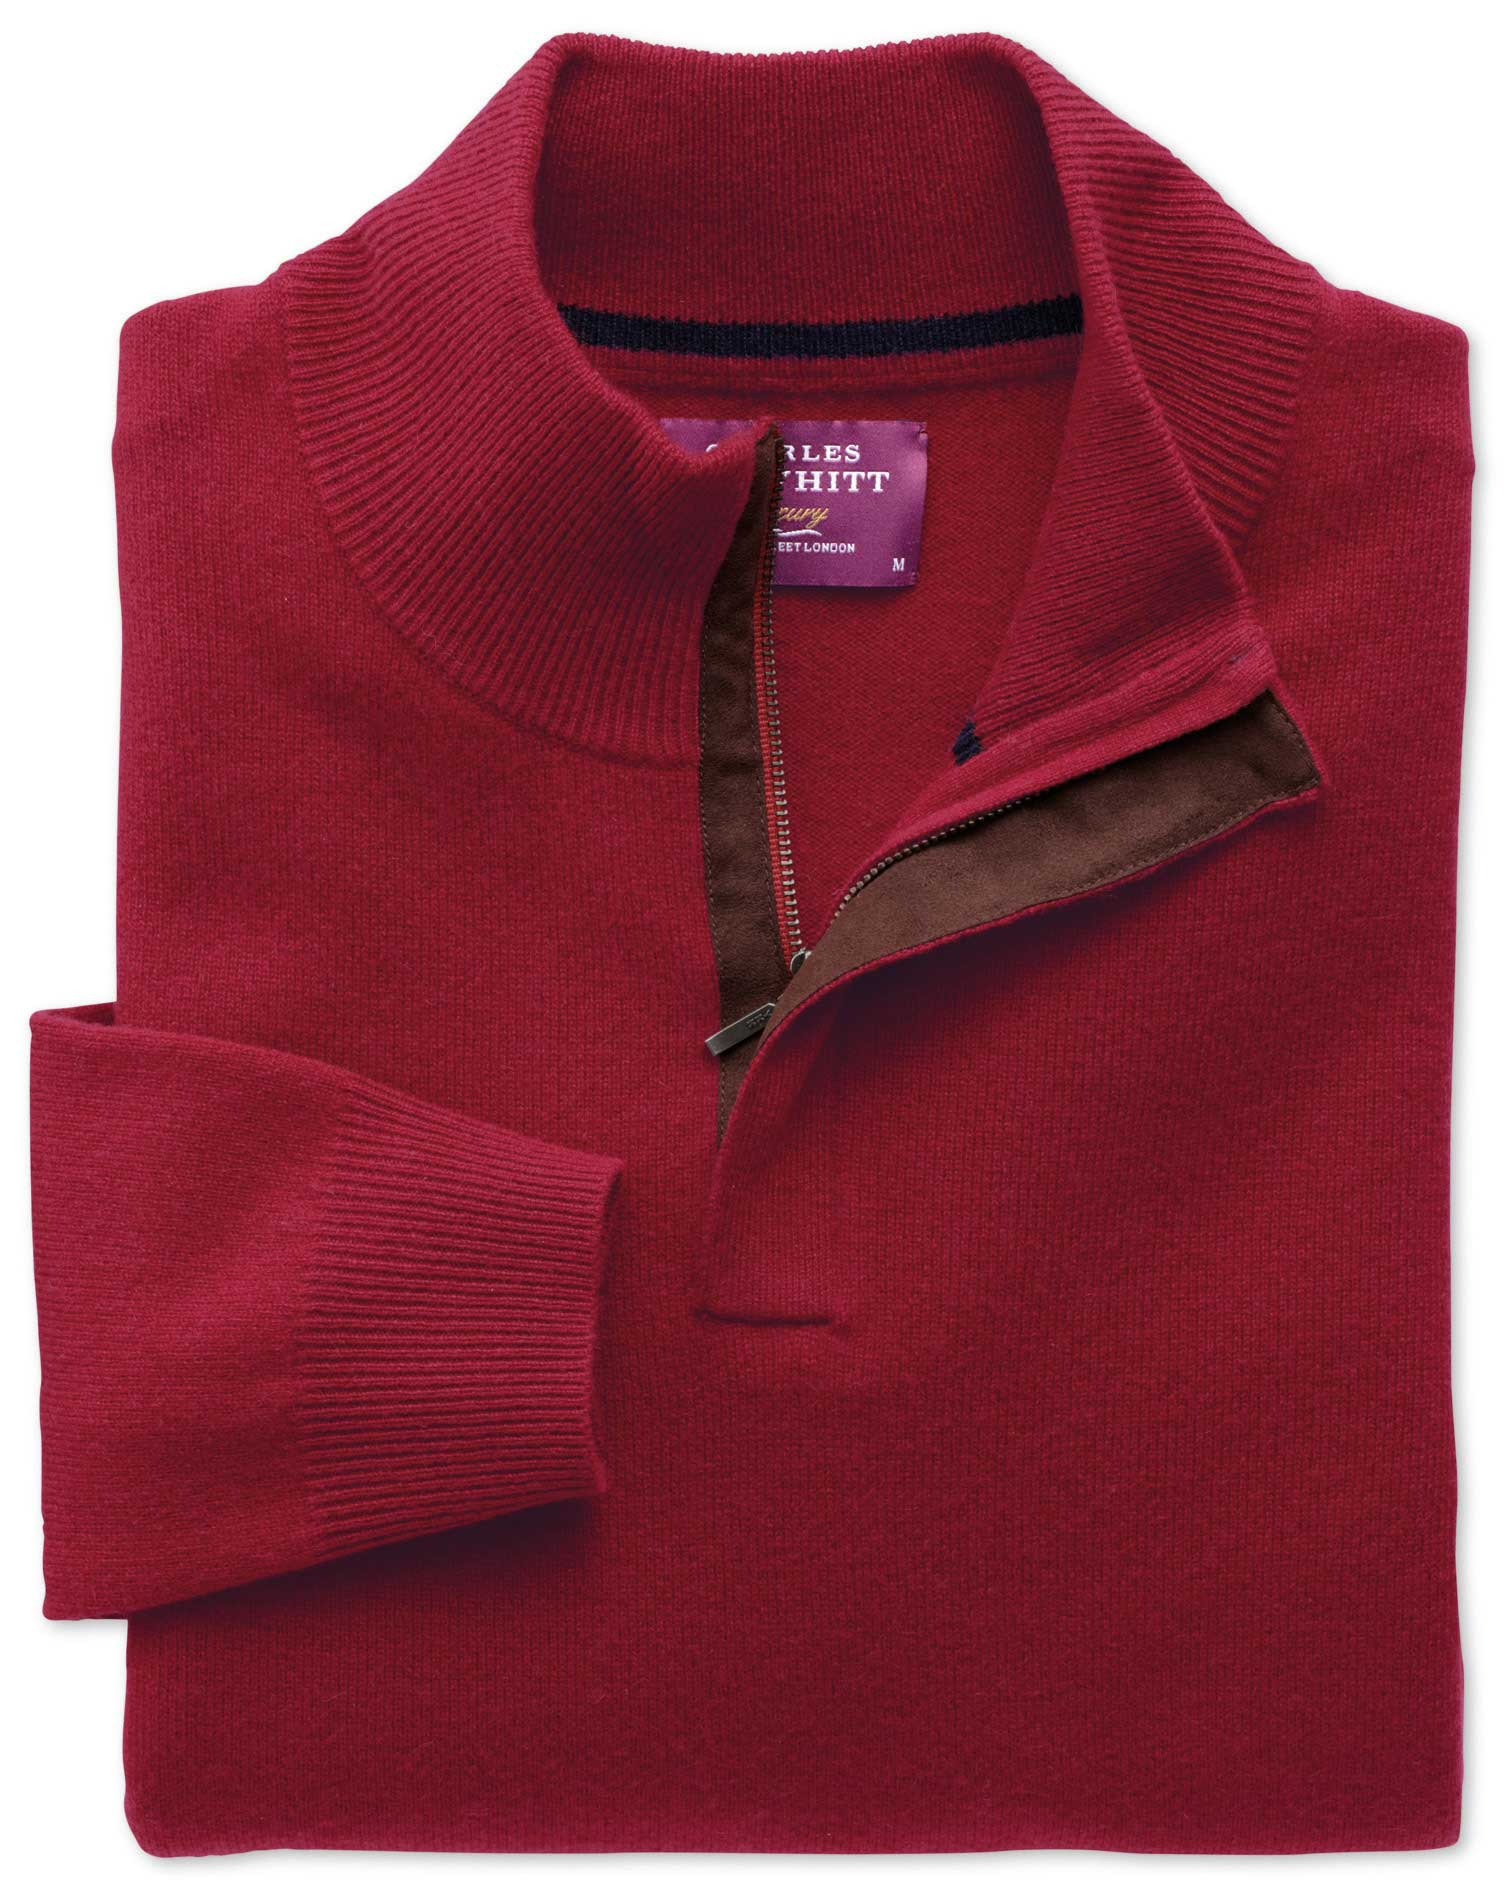 Red Cashmere Zip-Neck Jumper Size XS by Charles Tyrwhitt